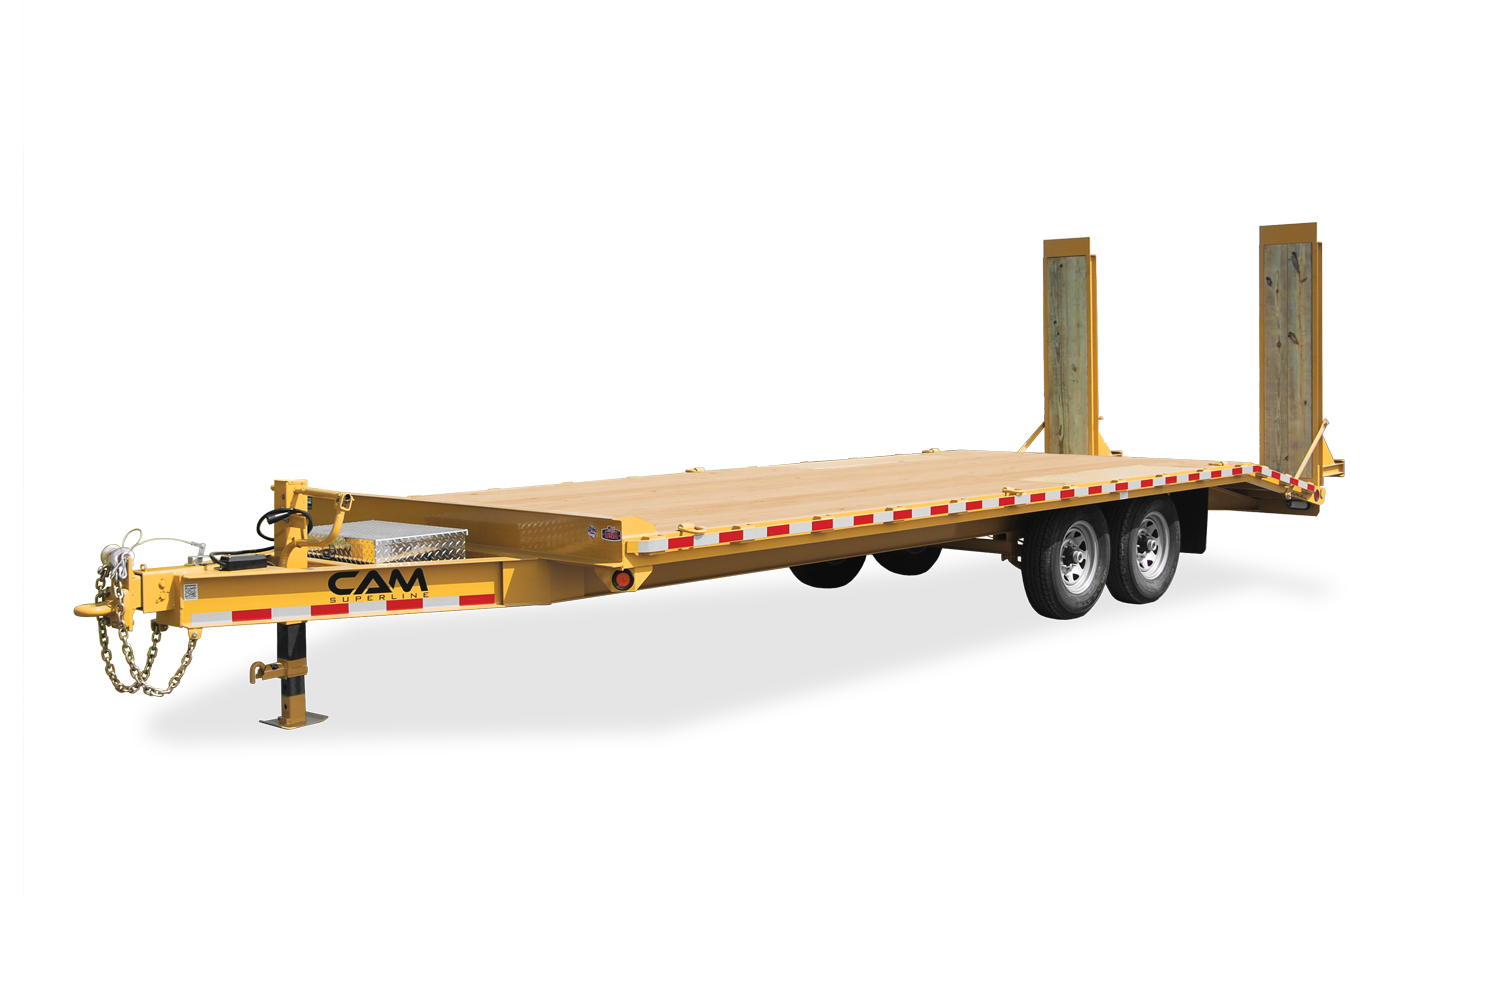 2021 Cam Superline 7 Ton Standard Duty Deckover Trailer 8.5